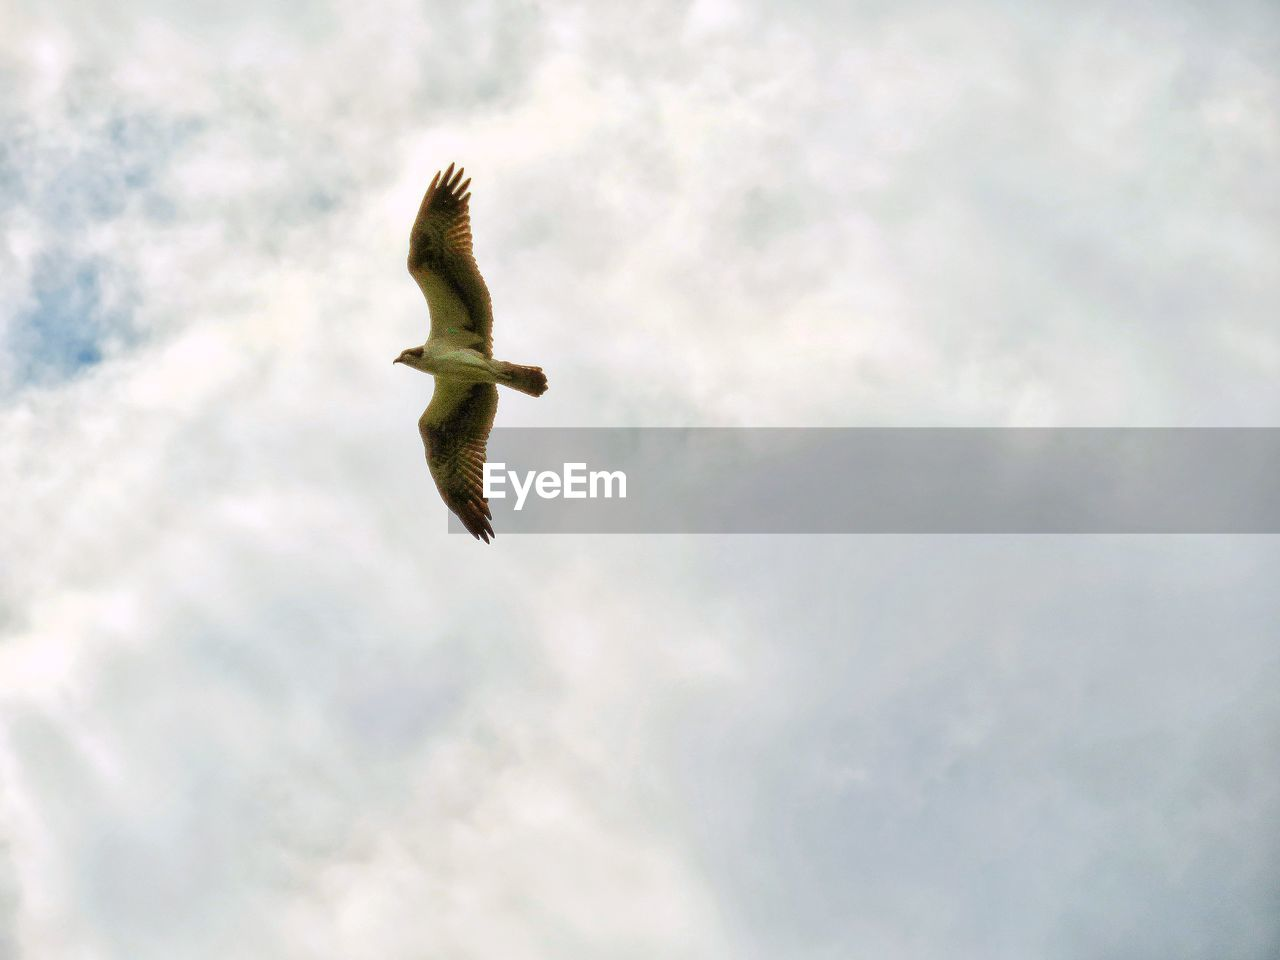 cloud - sky, sky, flying, low angle view, animal wildlife, animal themes, vertebrate, animal, bird, animals in the wild, one animal, mid-air, spread wings, no people, day, nature, outdoors, beauty in nature, motion, seagull, directly below